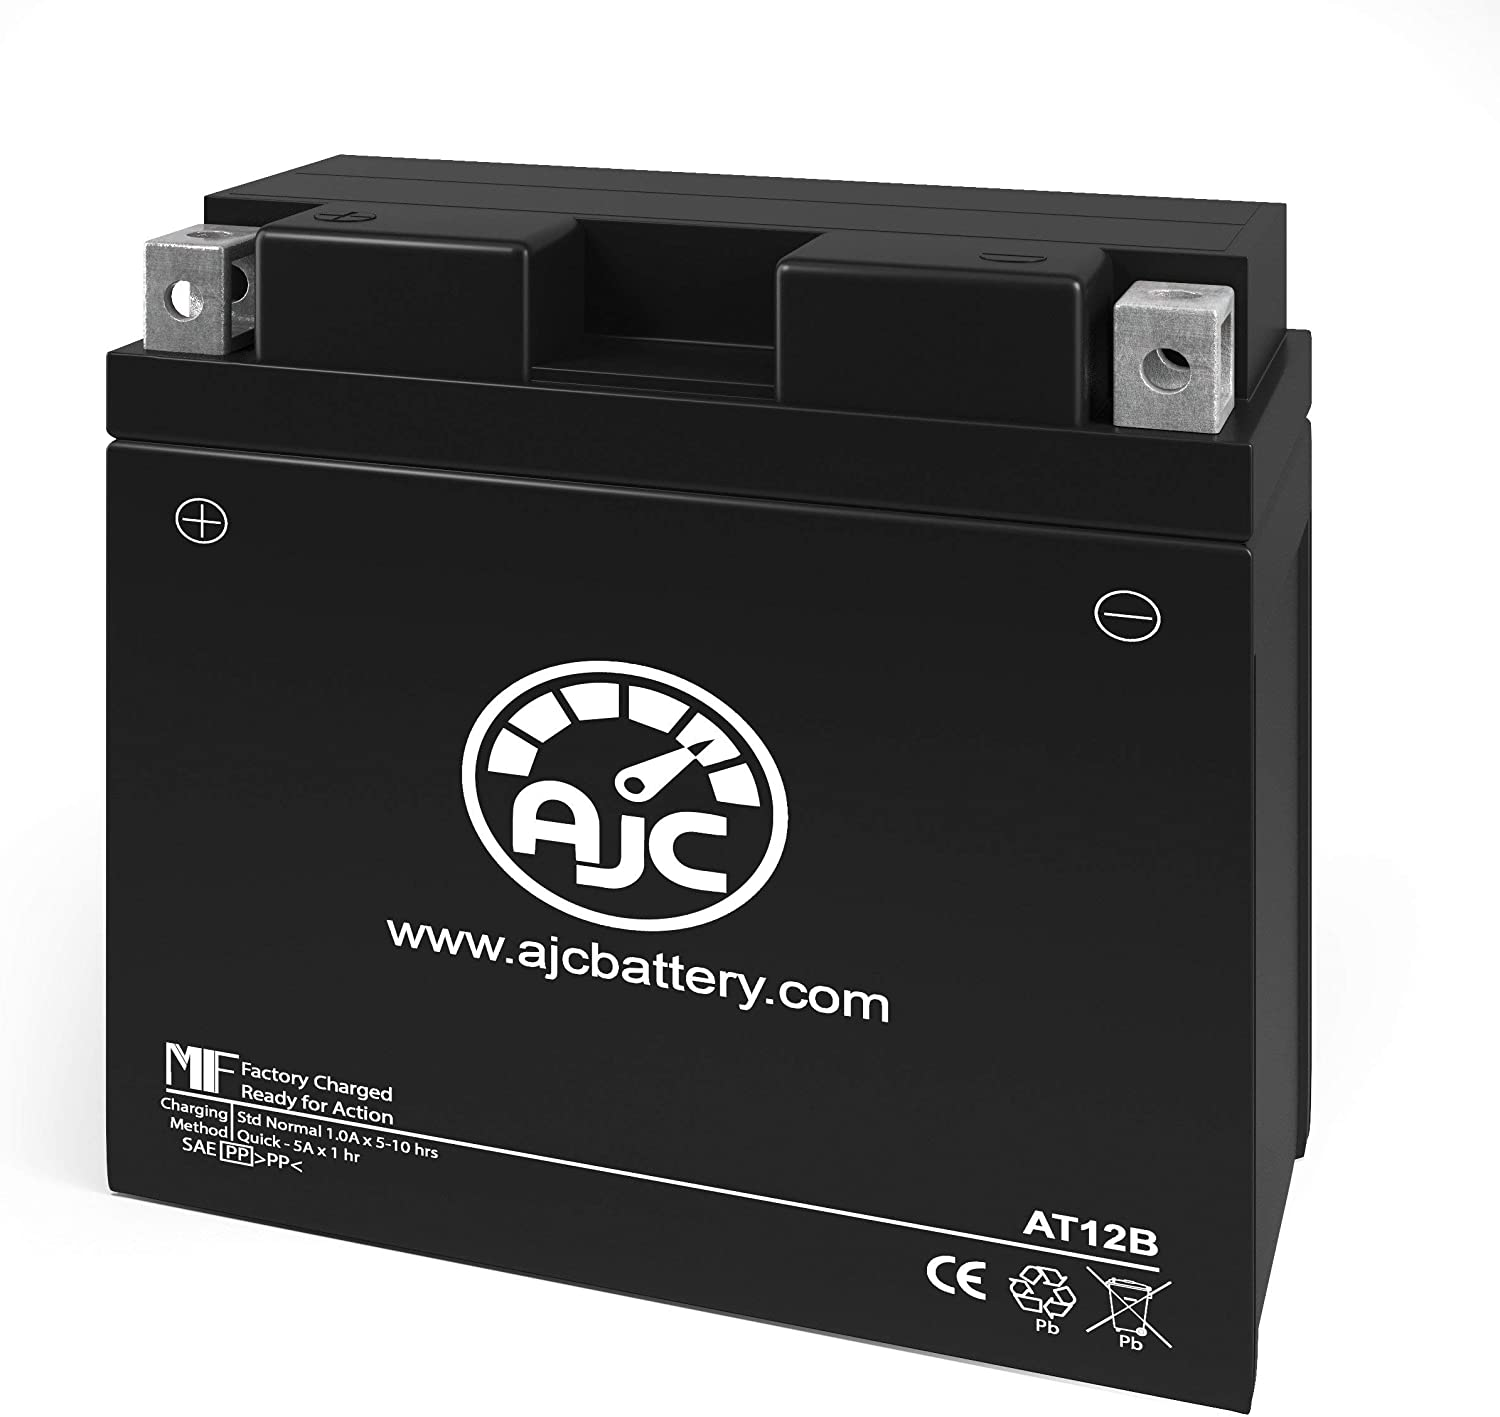 This is an AJC Brand Replacement 2007-2010 Triumph ST12B-4 1050CC Motorcycle Replacement Battery